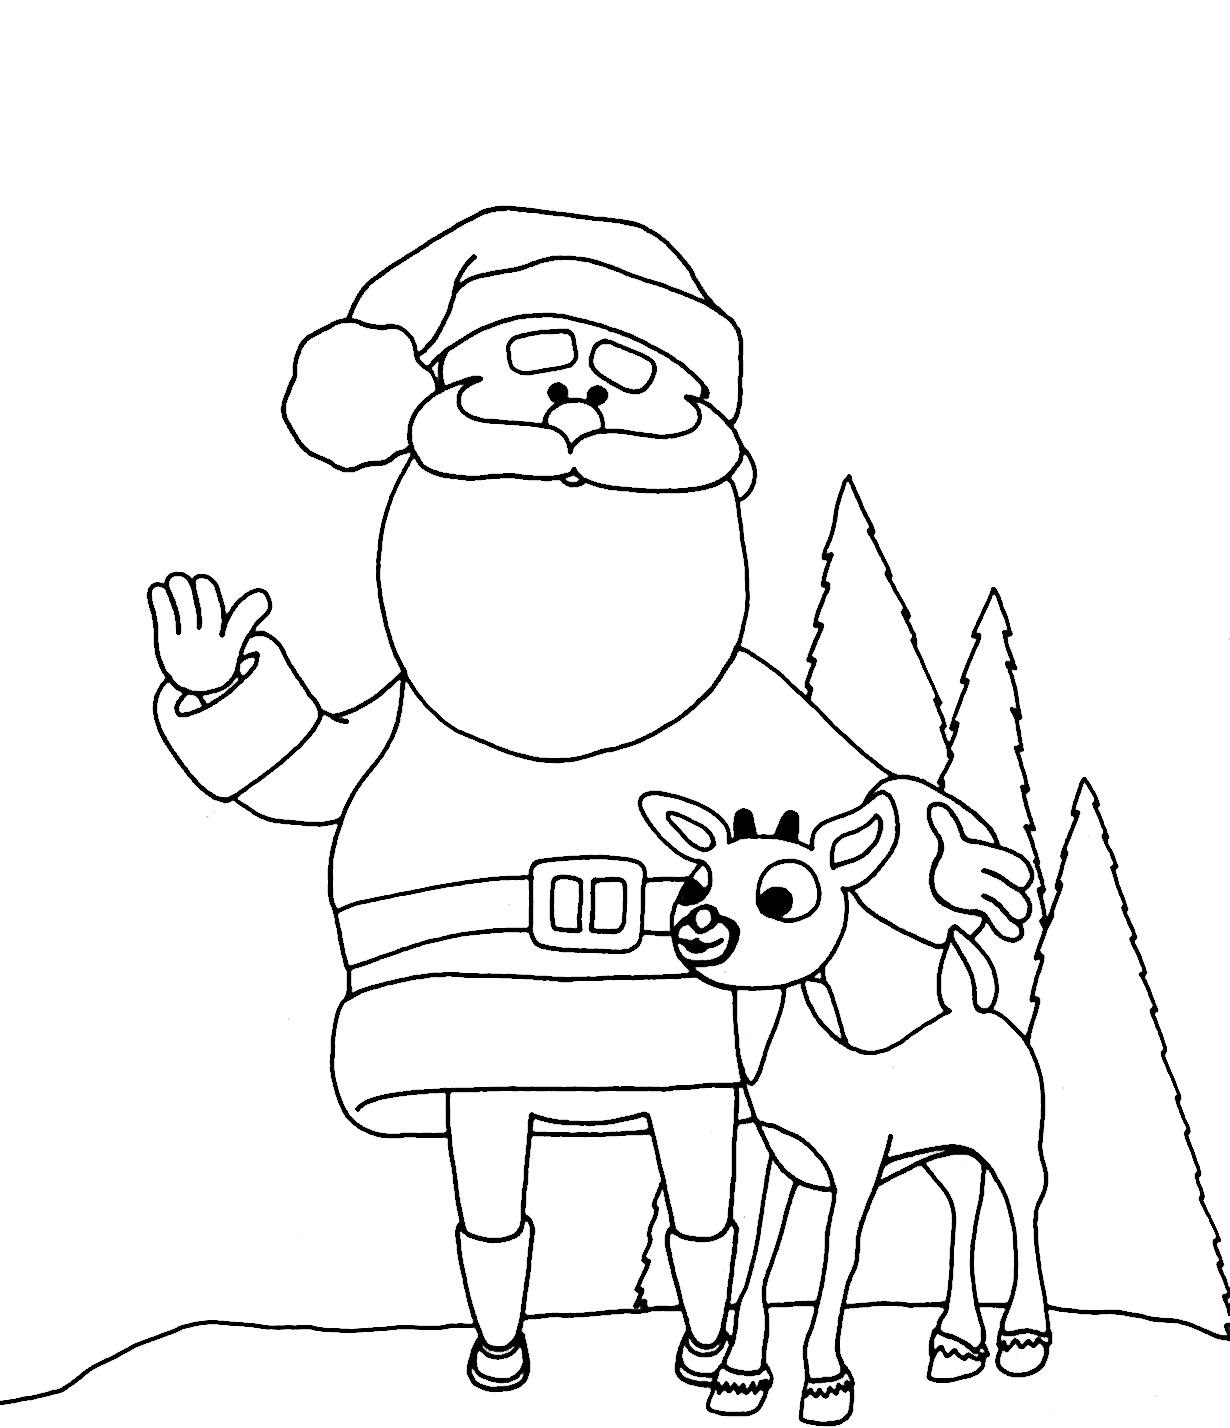 Reindeer Christmas Coloring Pages Rudolph The Red Nosed Reindeer